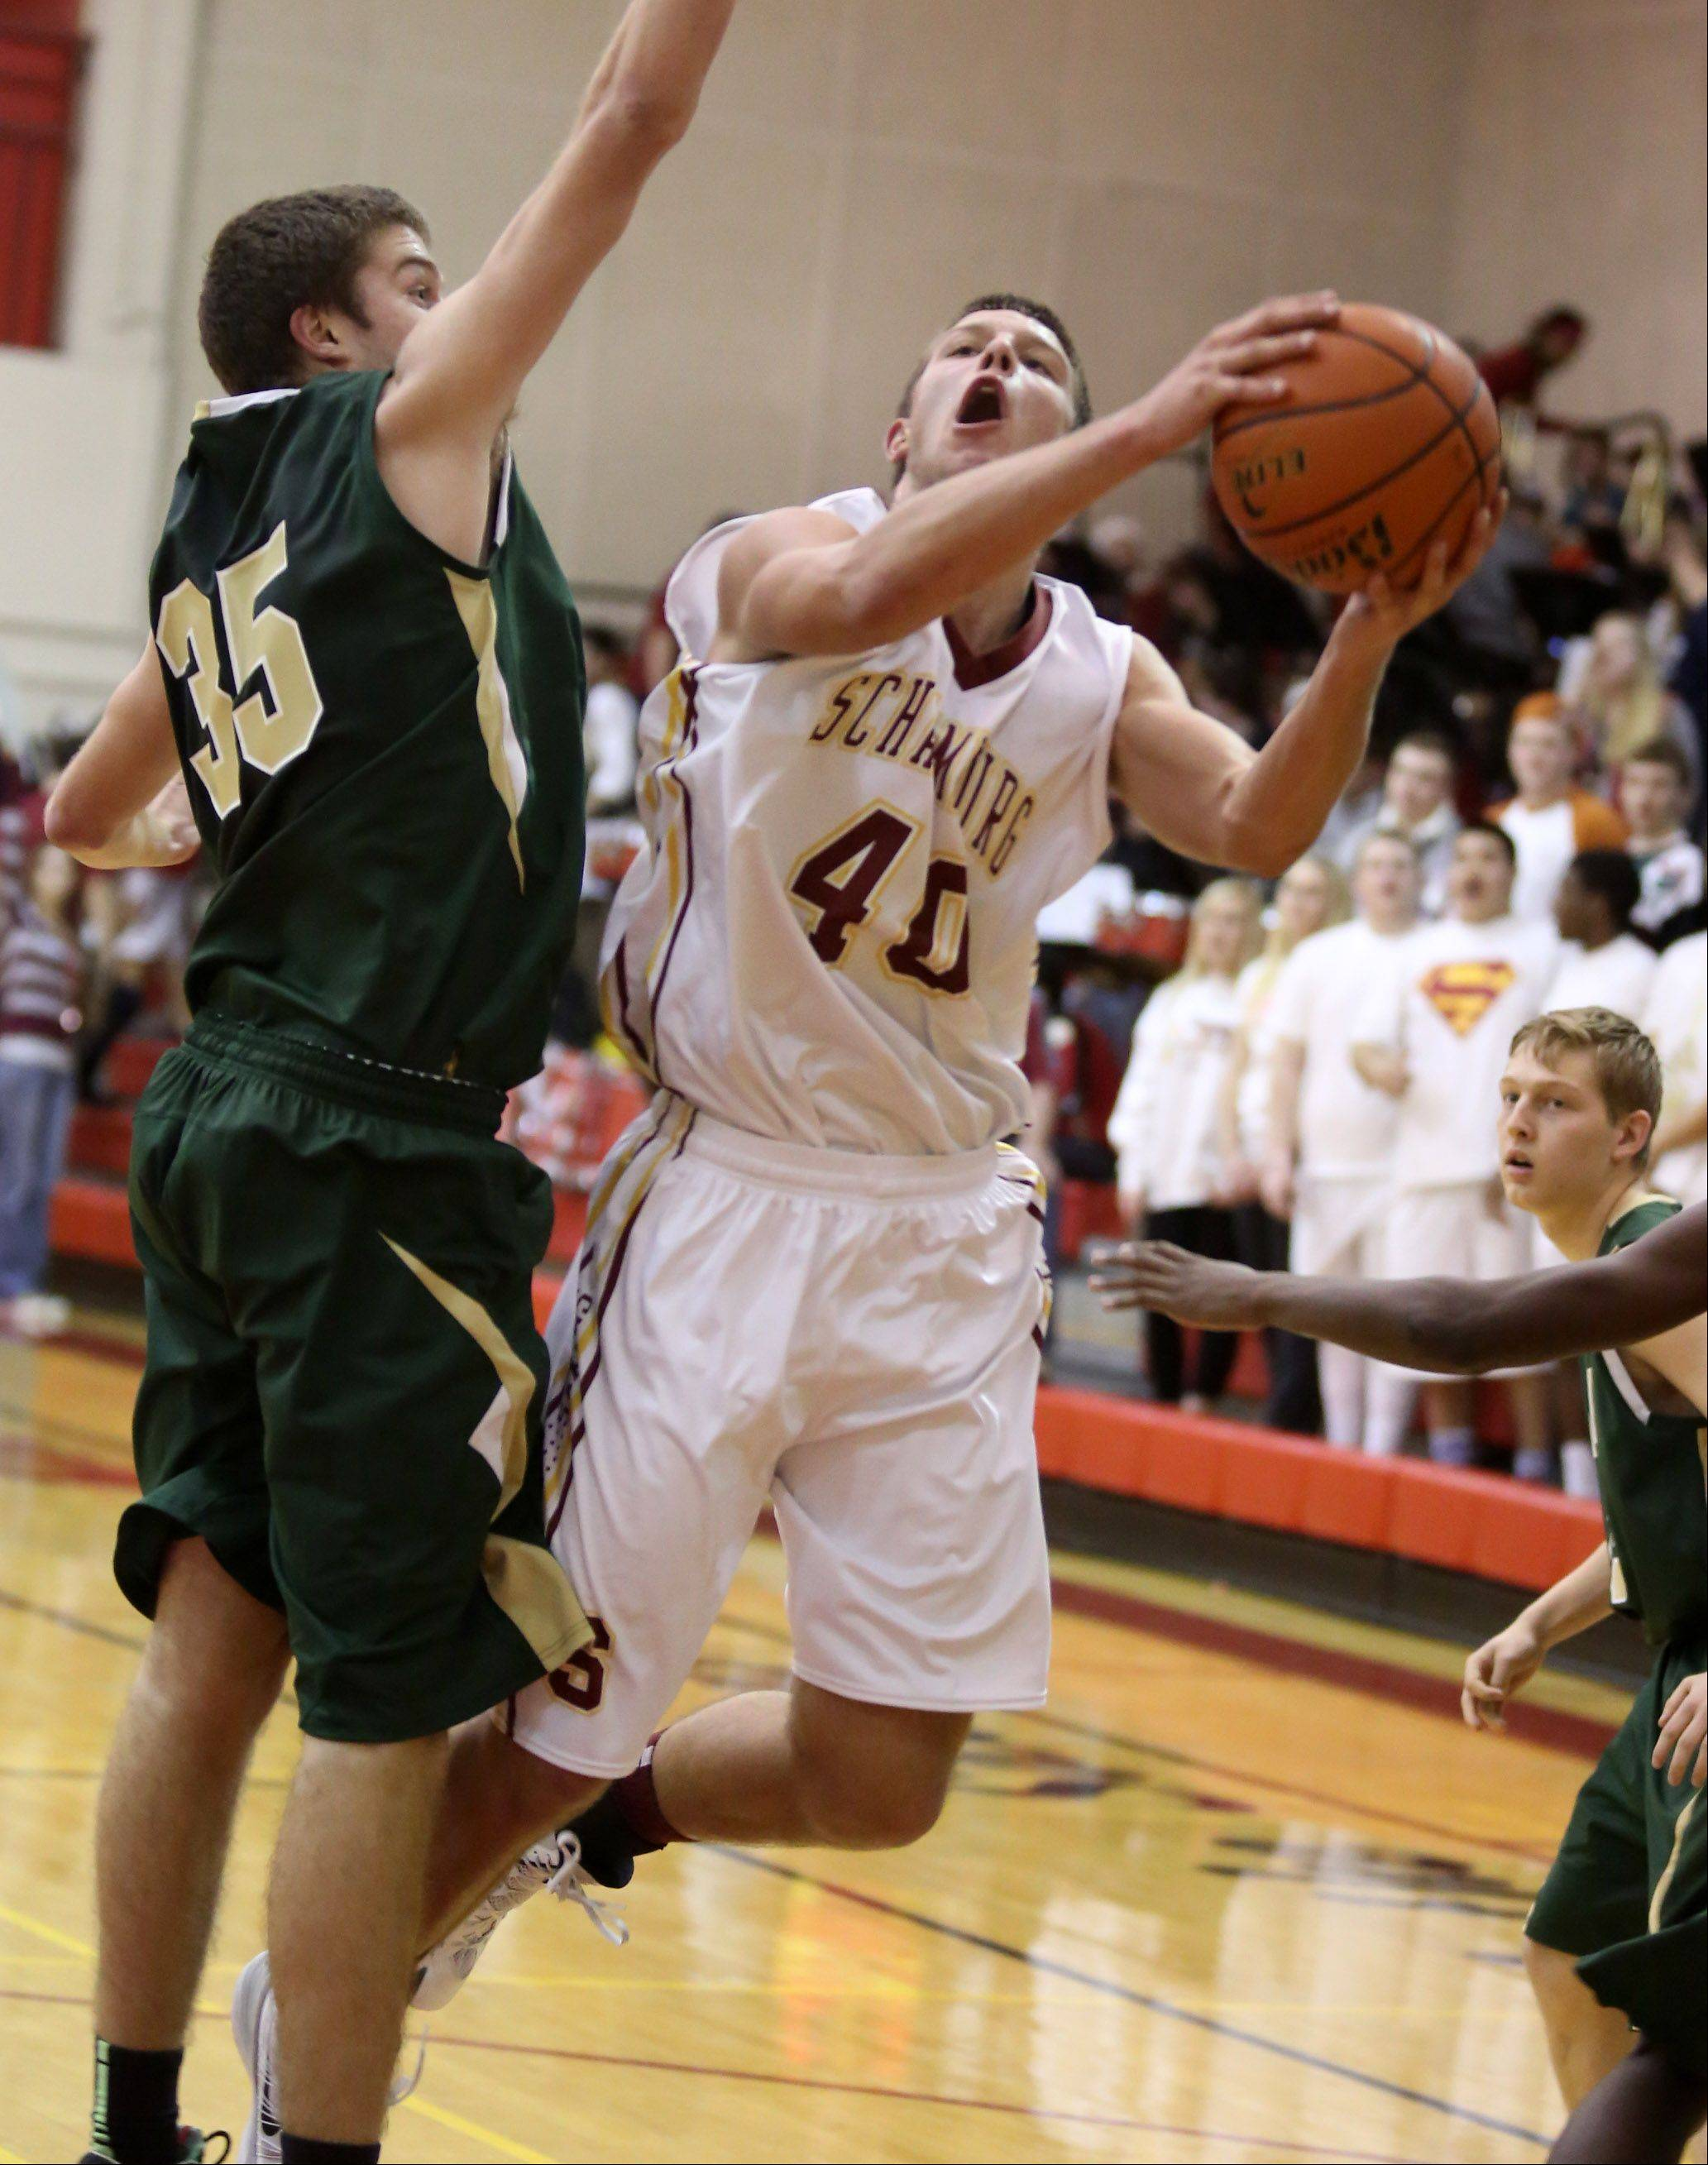 Schaumburg forward Joshua Rahn puts the ball up against Fremd defender Thomas Cordell.